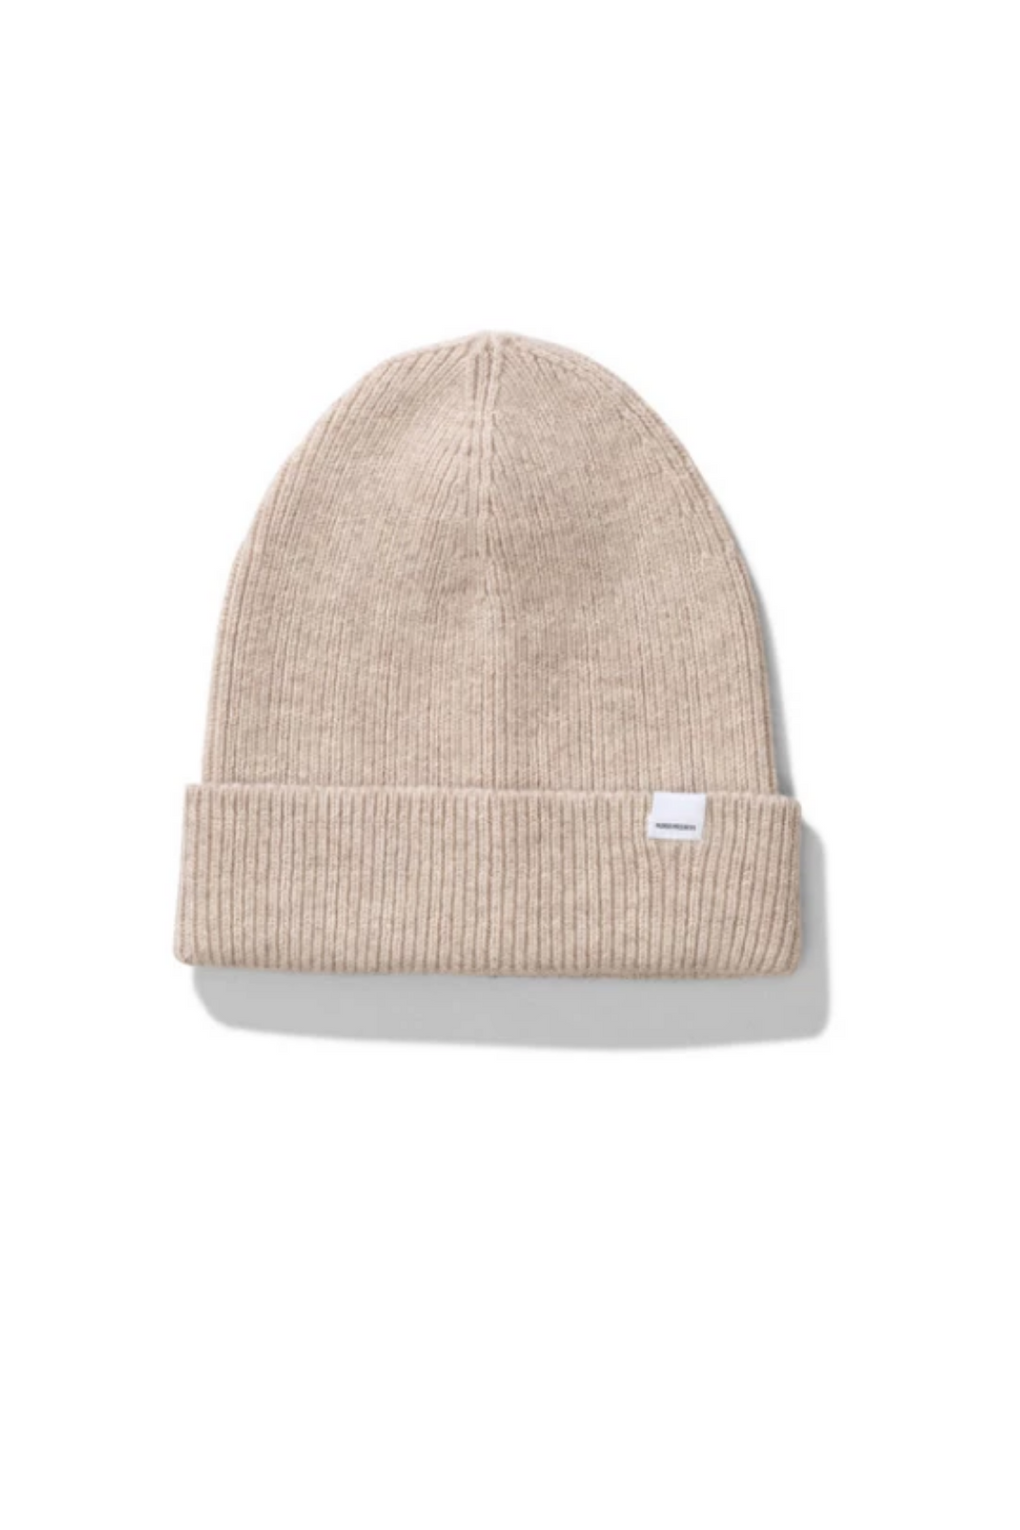 Norse Lambswool Beanie in Oatmeal